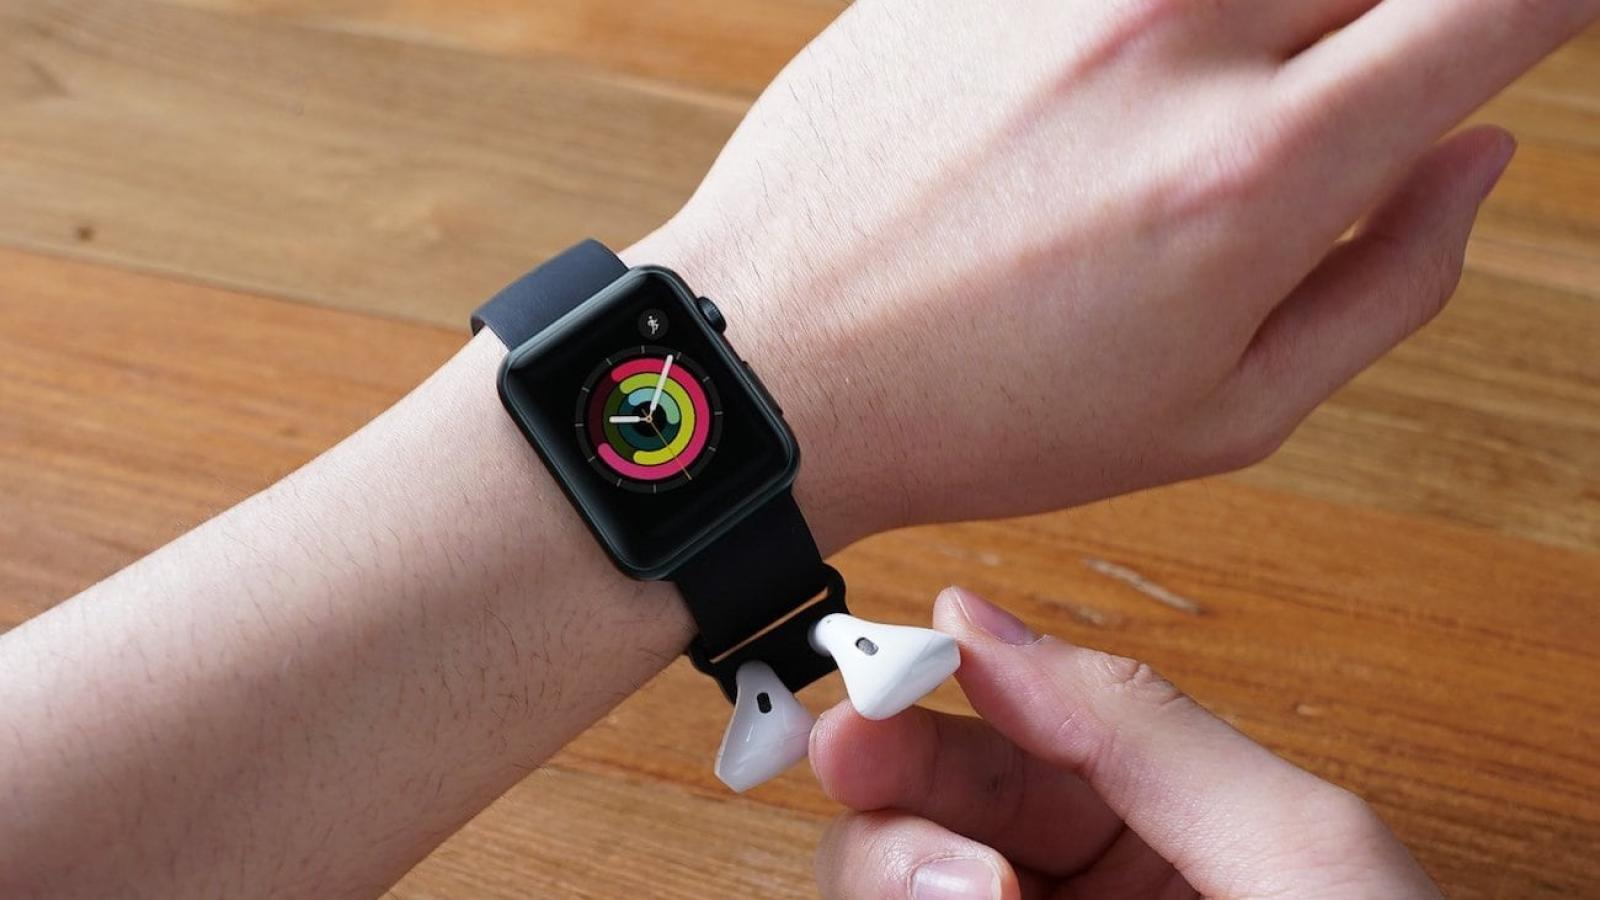 Cool Tech: A silicone strap that secures your AirPods and more tech!